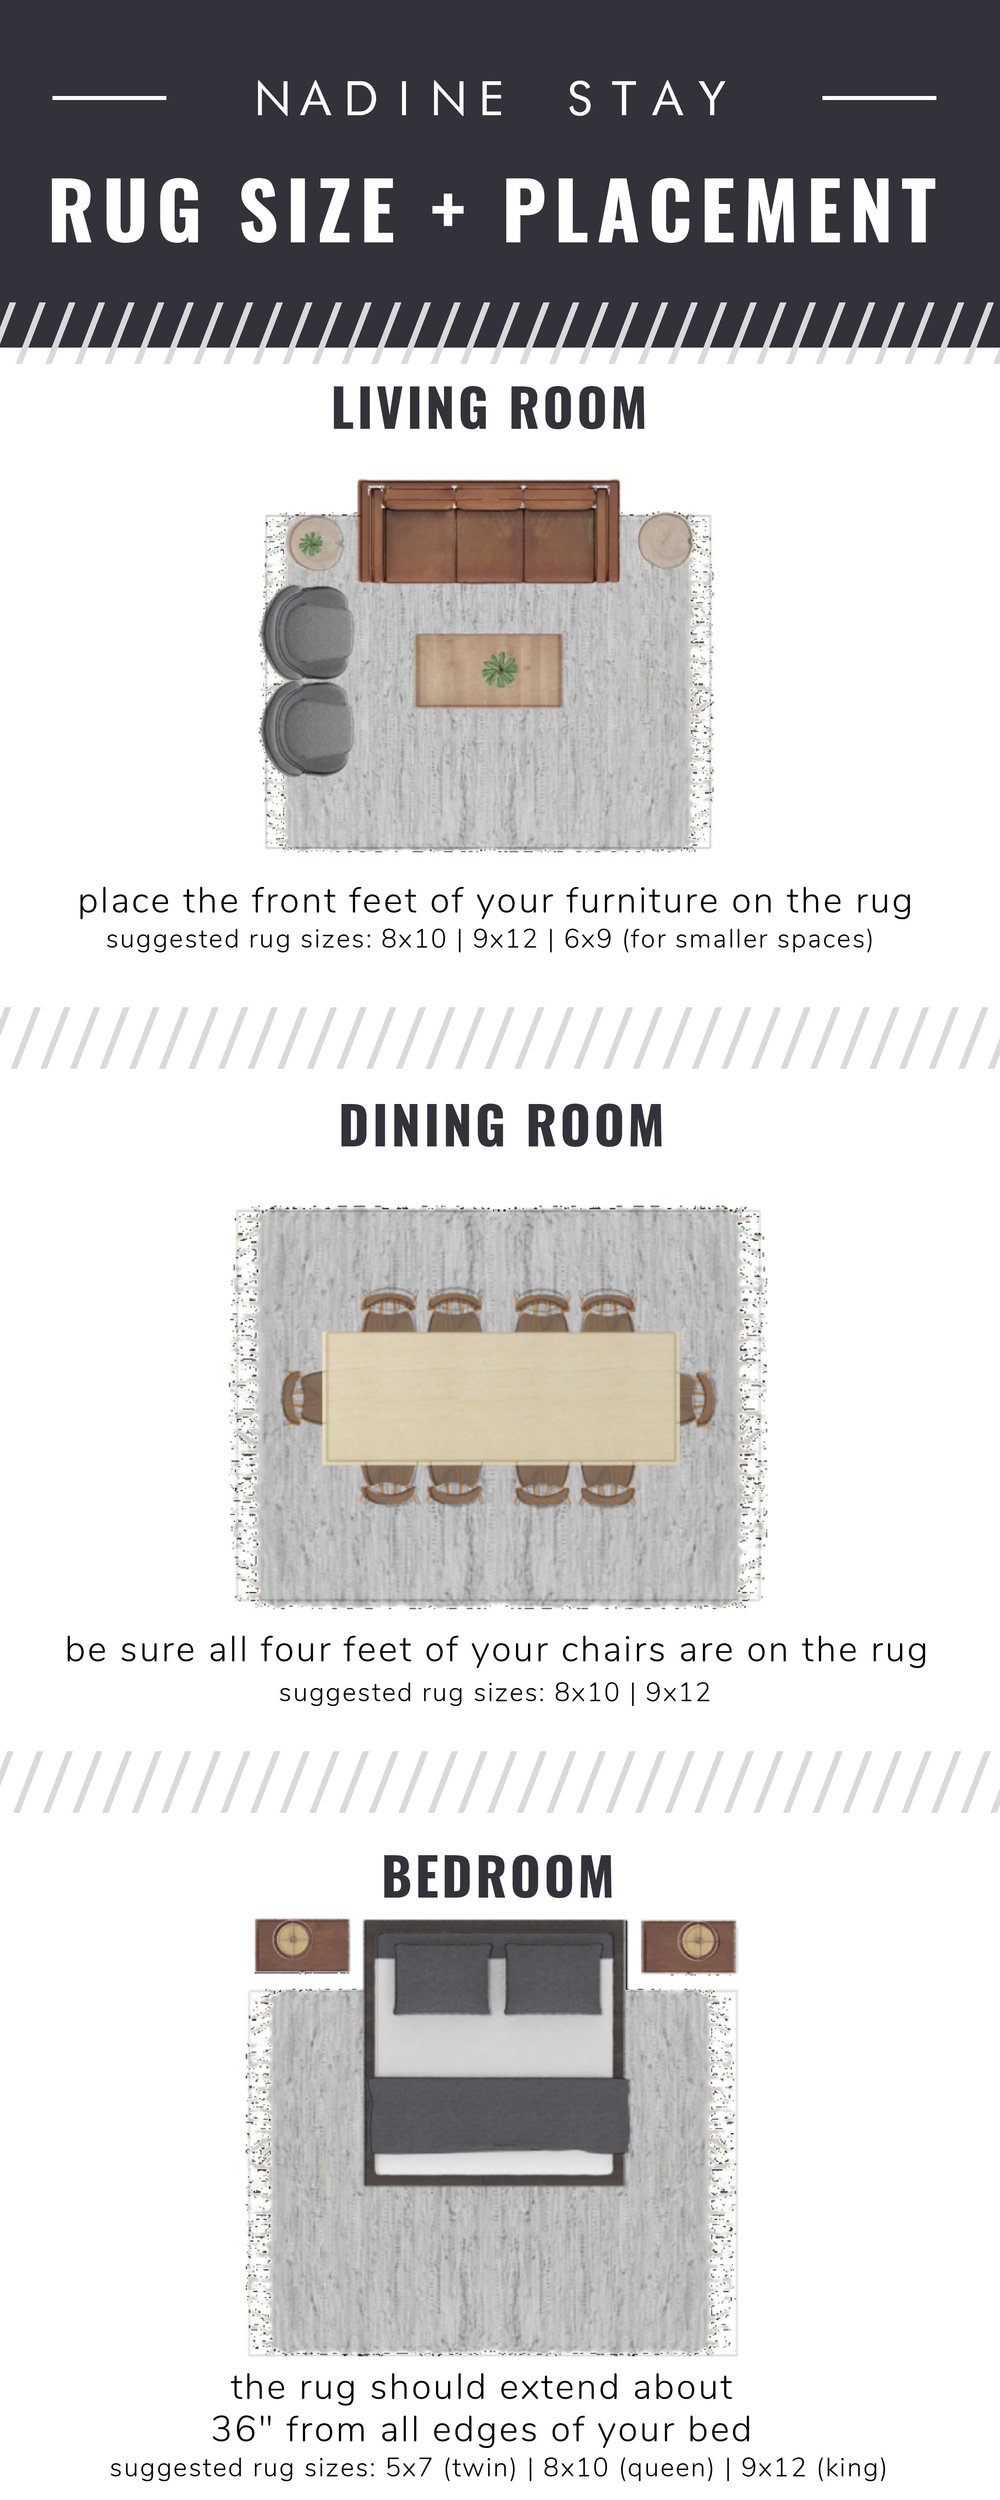 rug sizing and placement guide - what size rug do you need for your living room, bedroom, and dining room